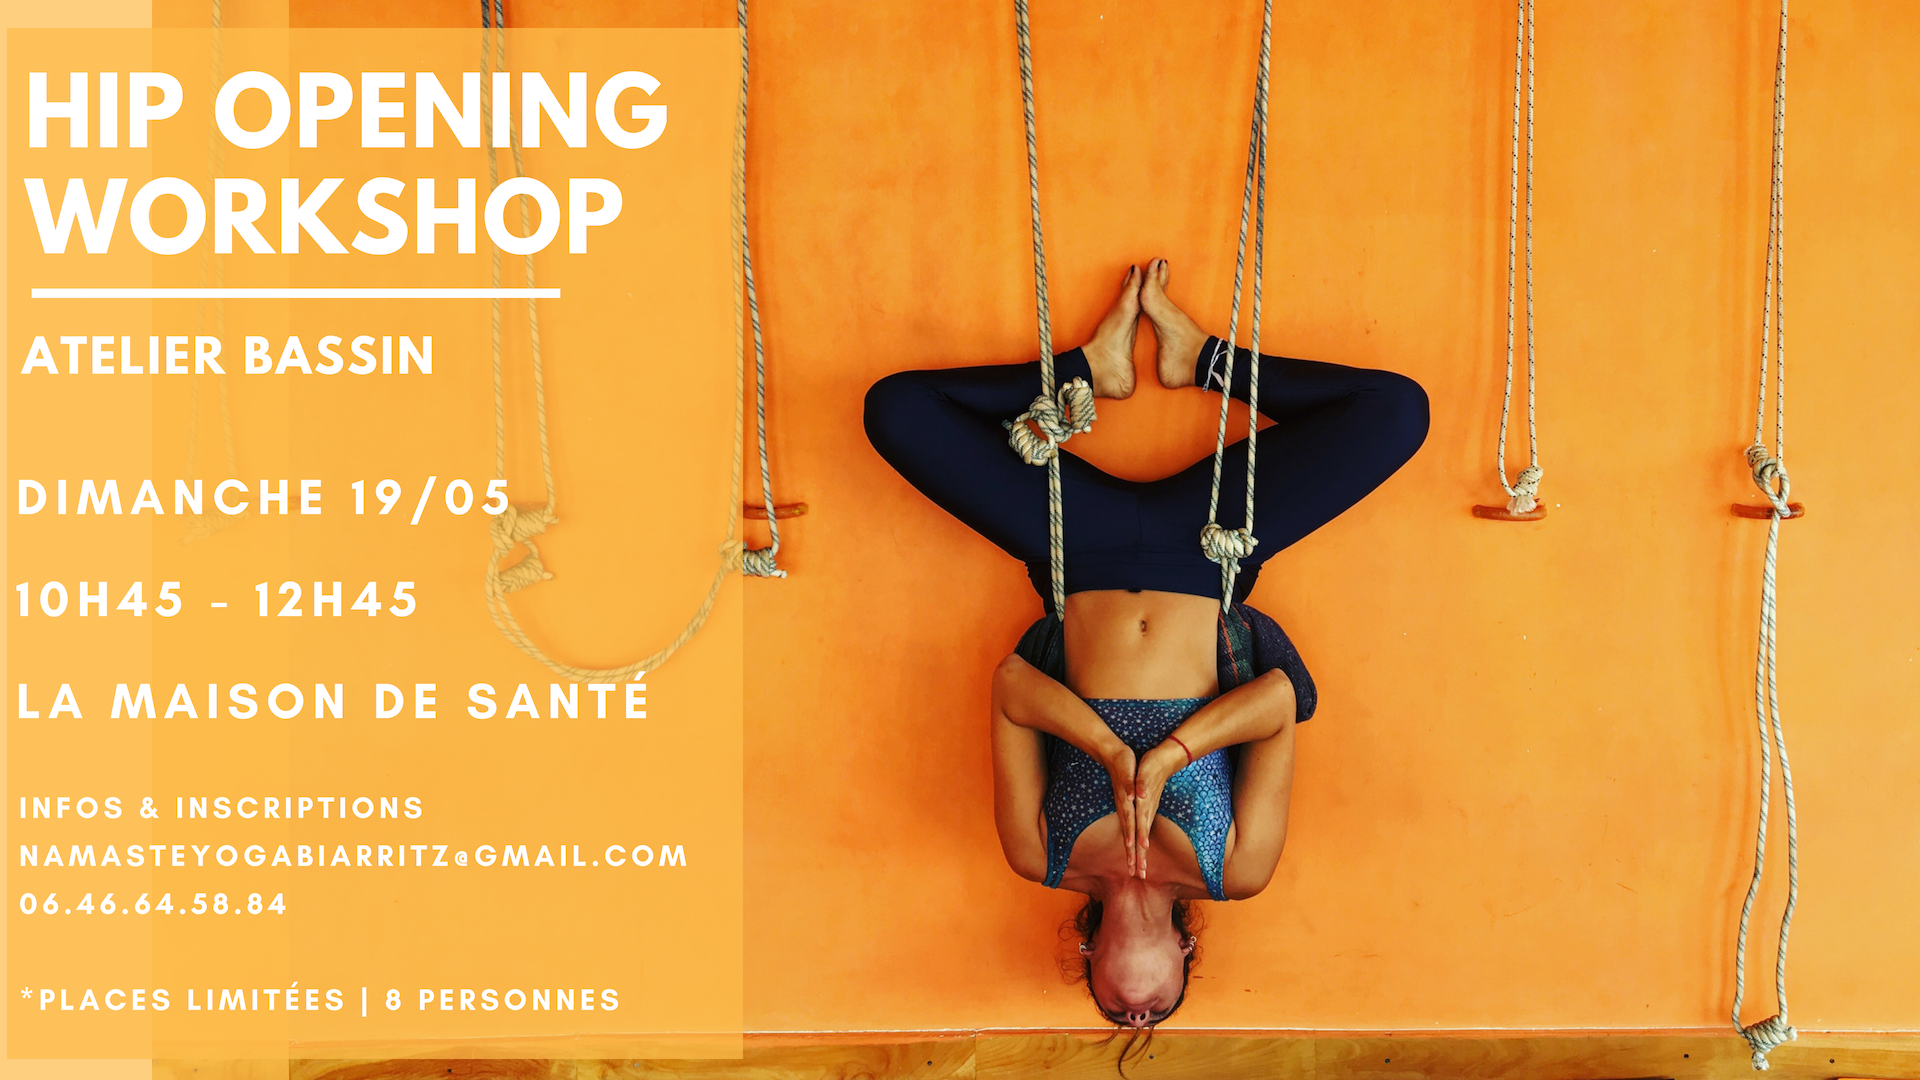 Hip Opening Workshop - Atelier Bassin